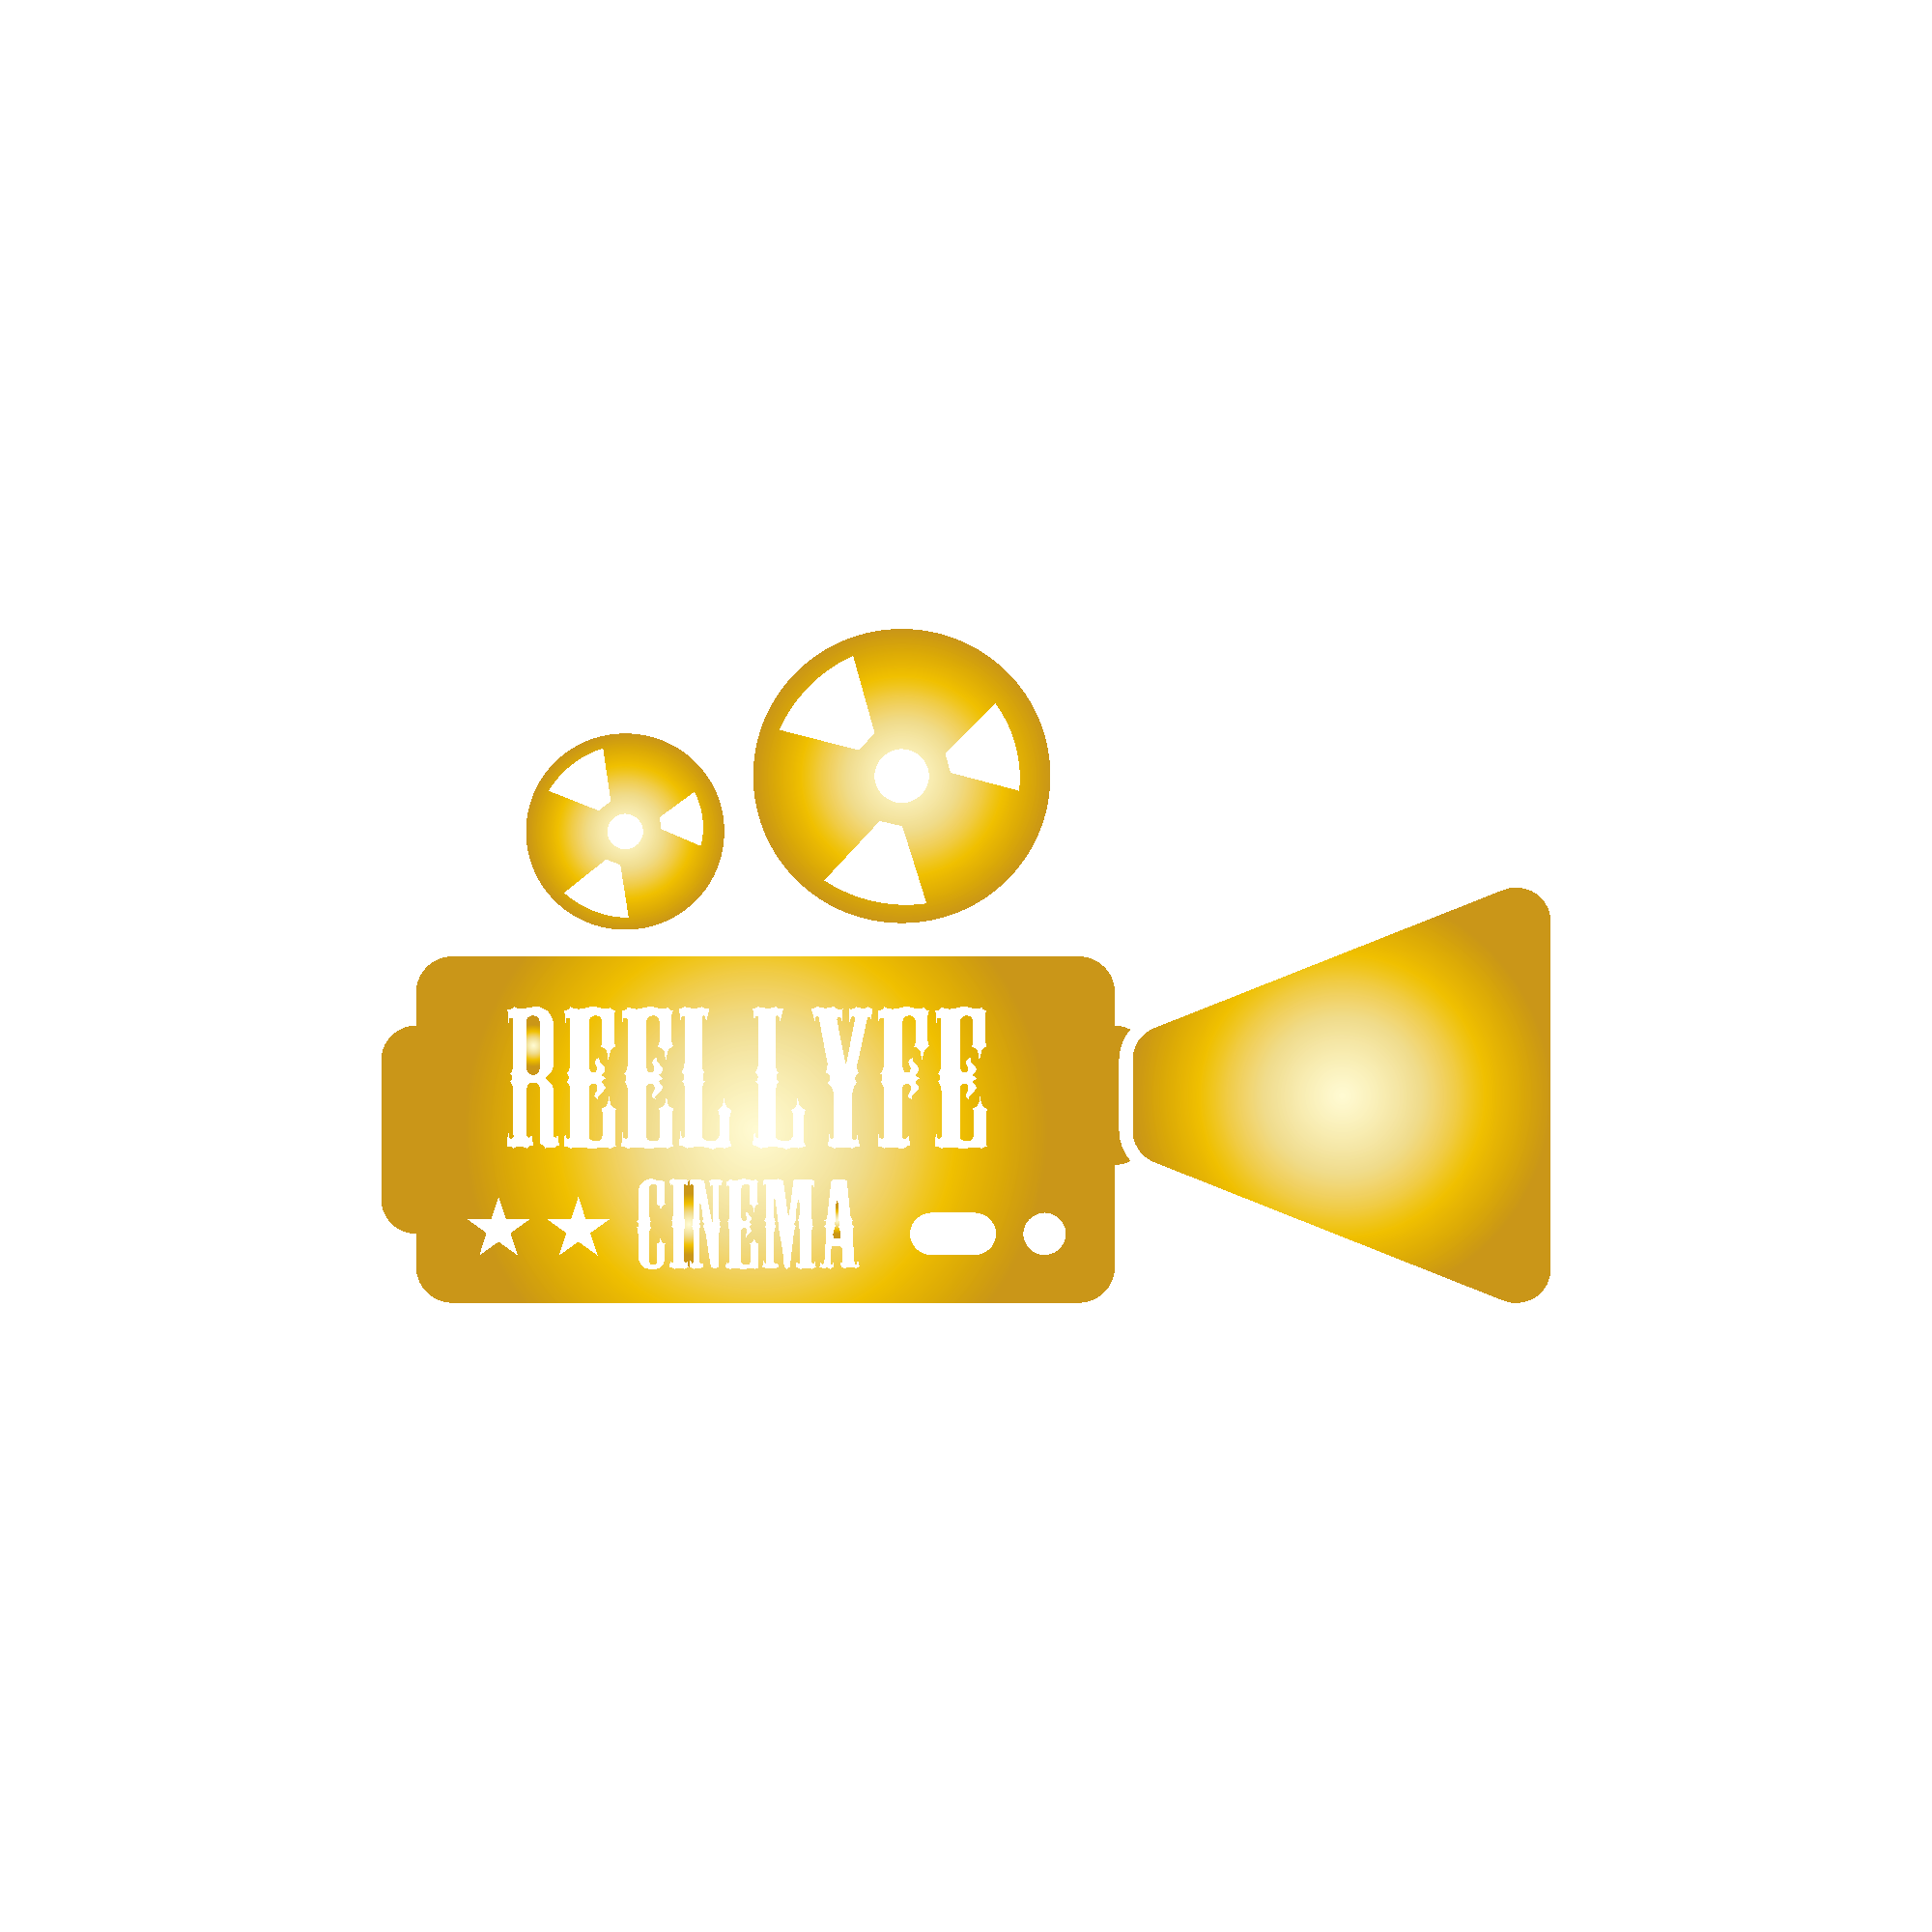 Reel Life Cinema logo